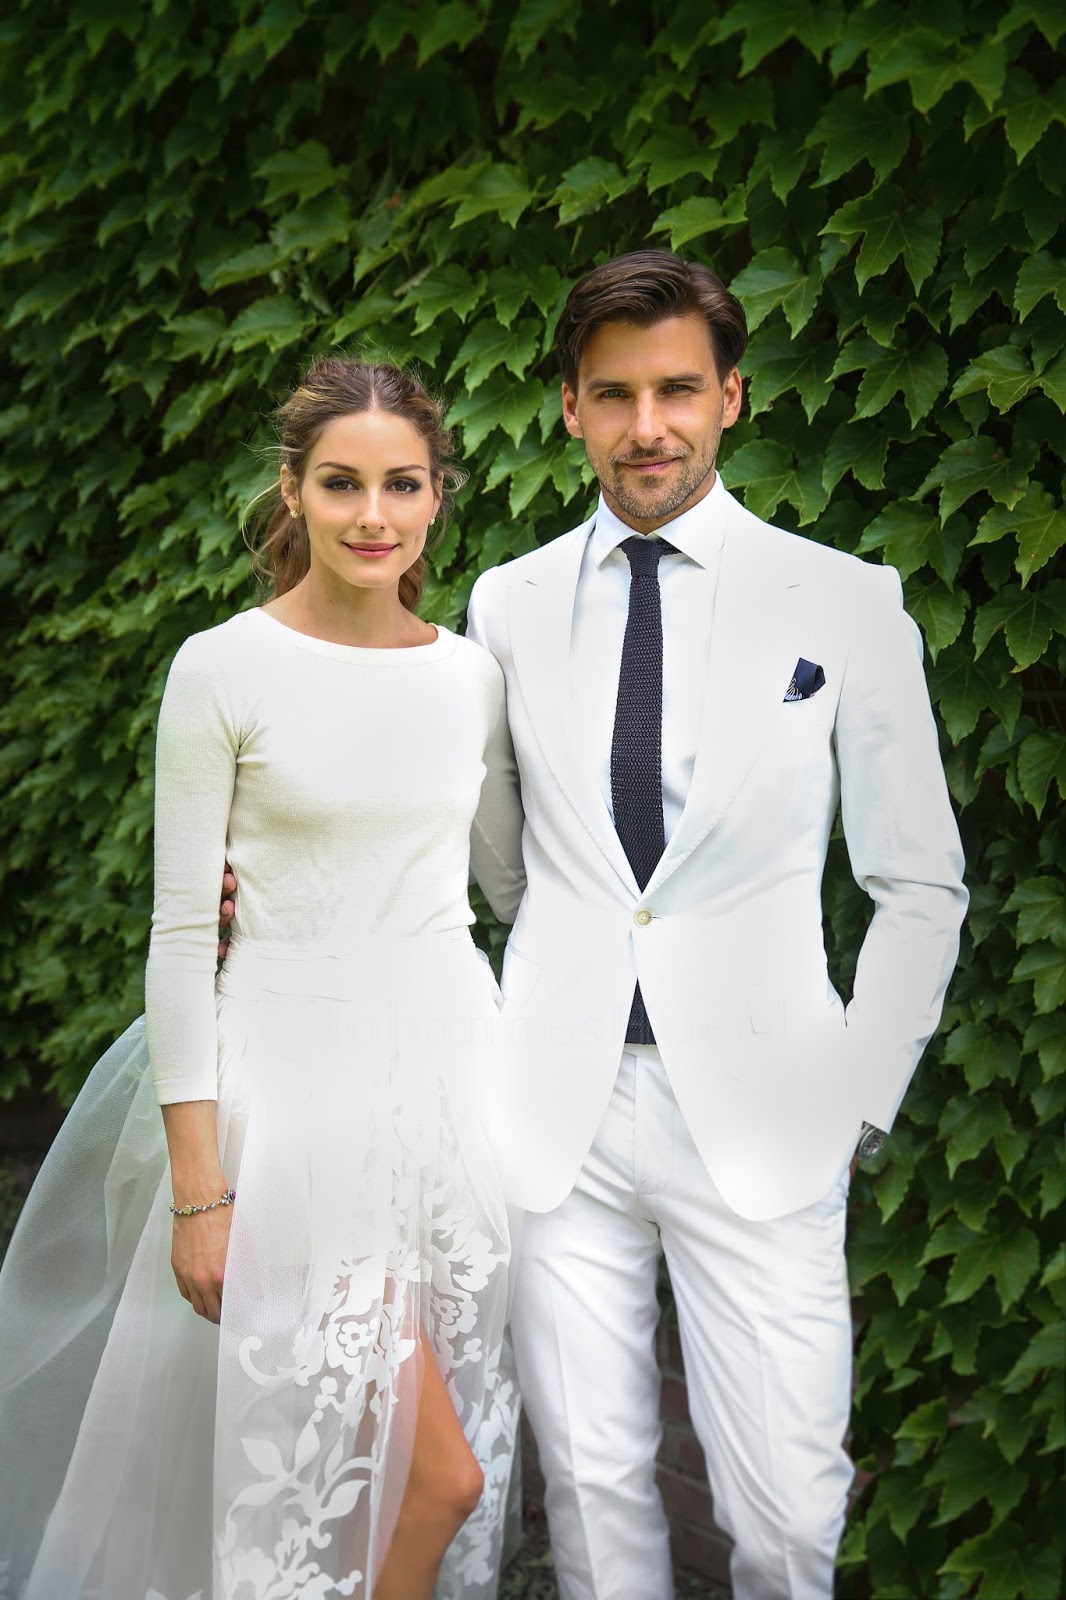 493281e48e1 Style Snapshot  Johannes Huebl in a White Suit on His Wedding Day ...